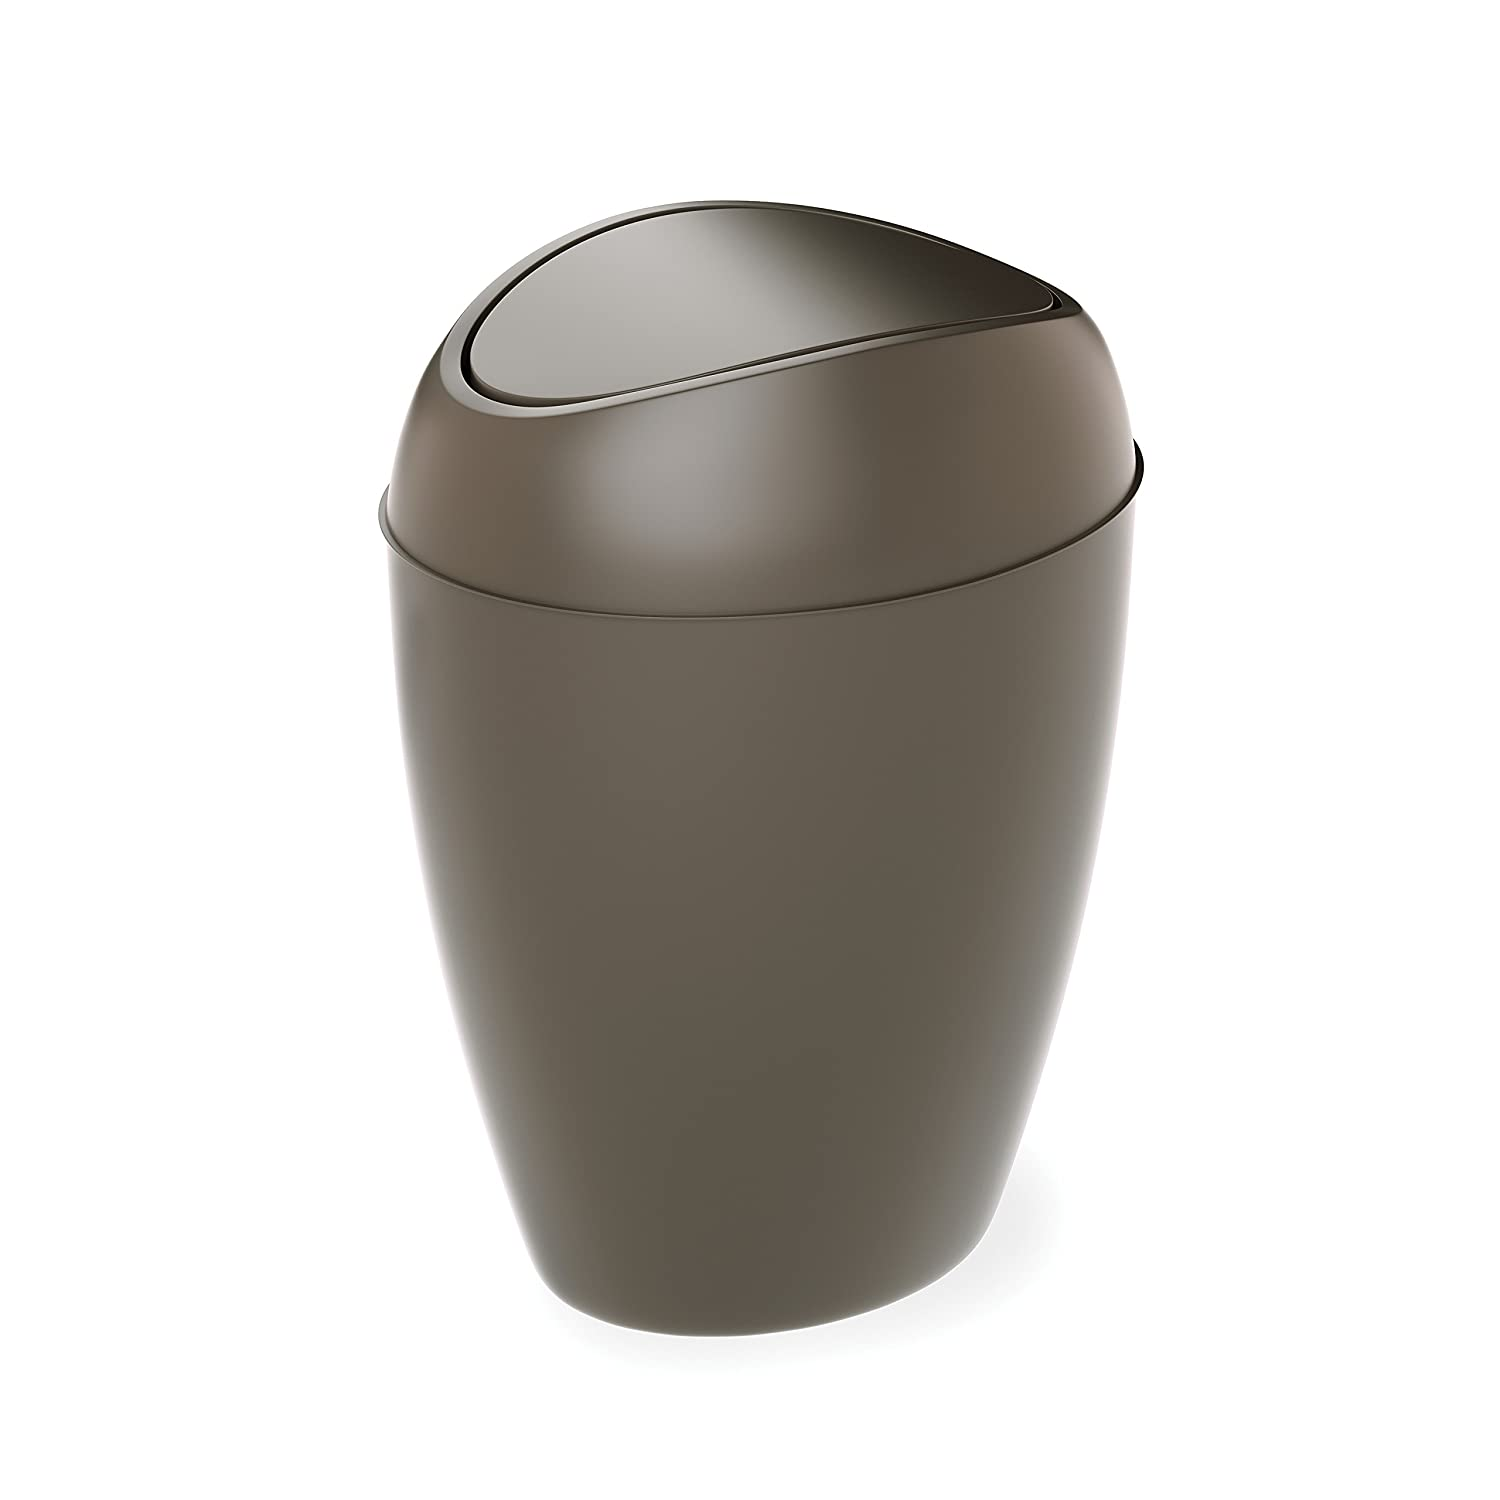 Umbra Twirla Trash Can with Swing-top Lid 2.2 Gallon Shadow Gray